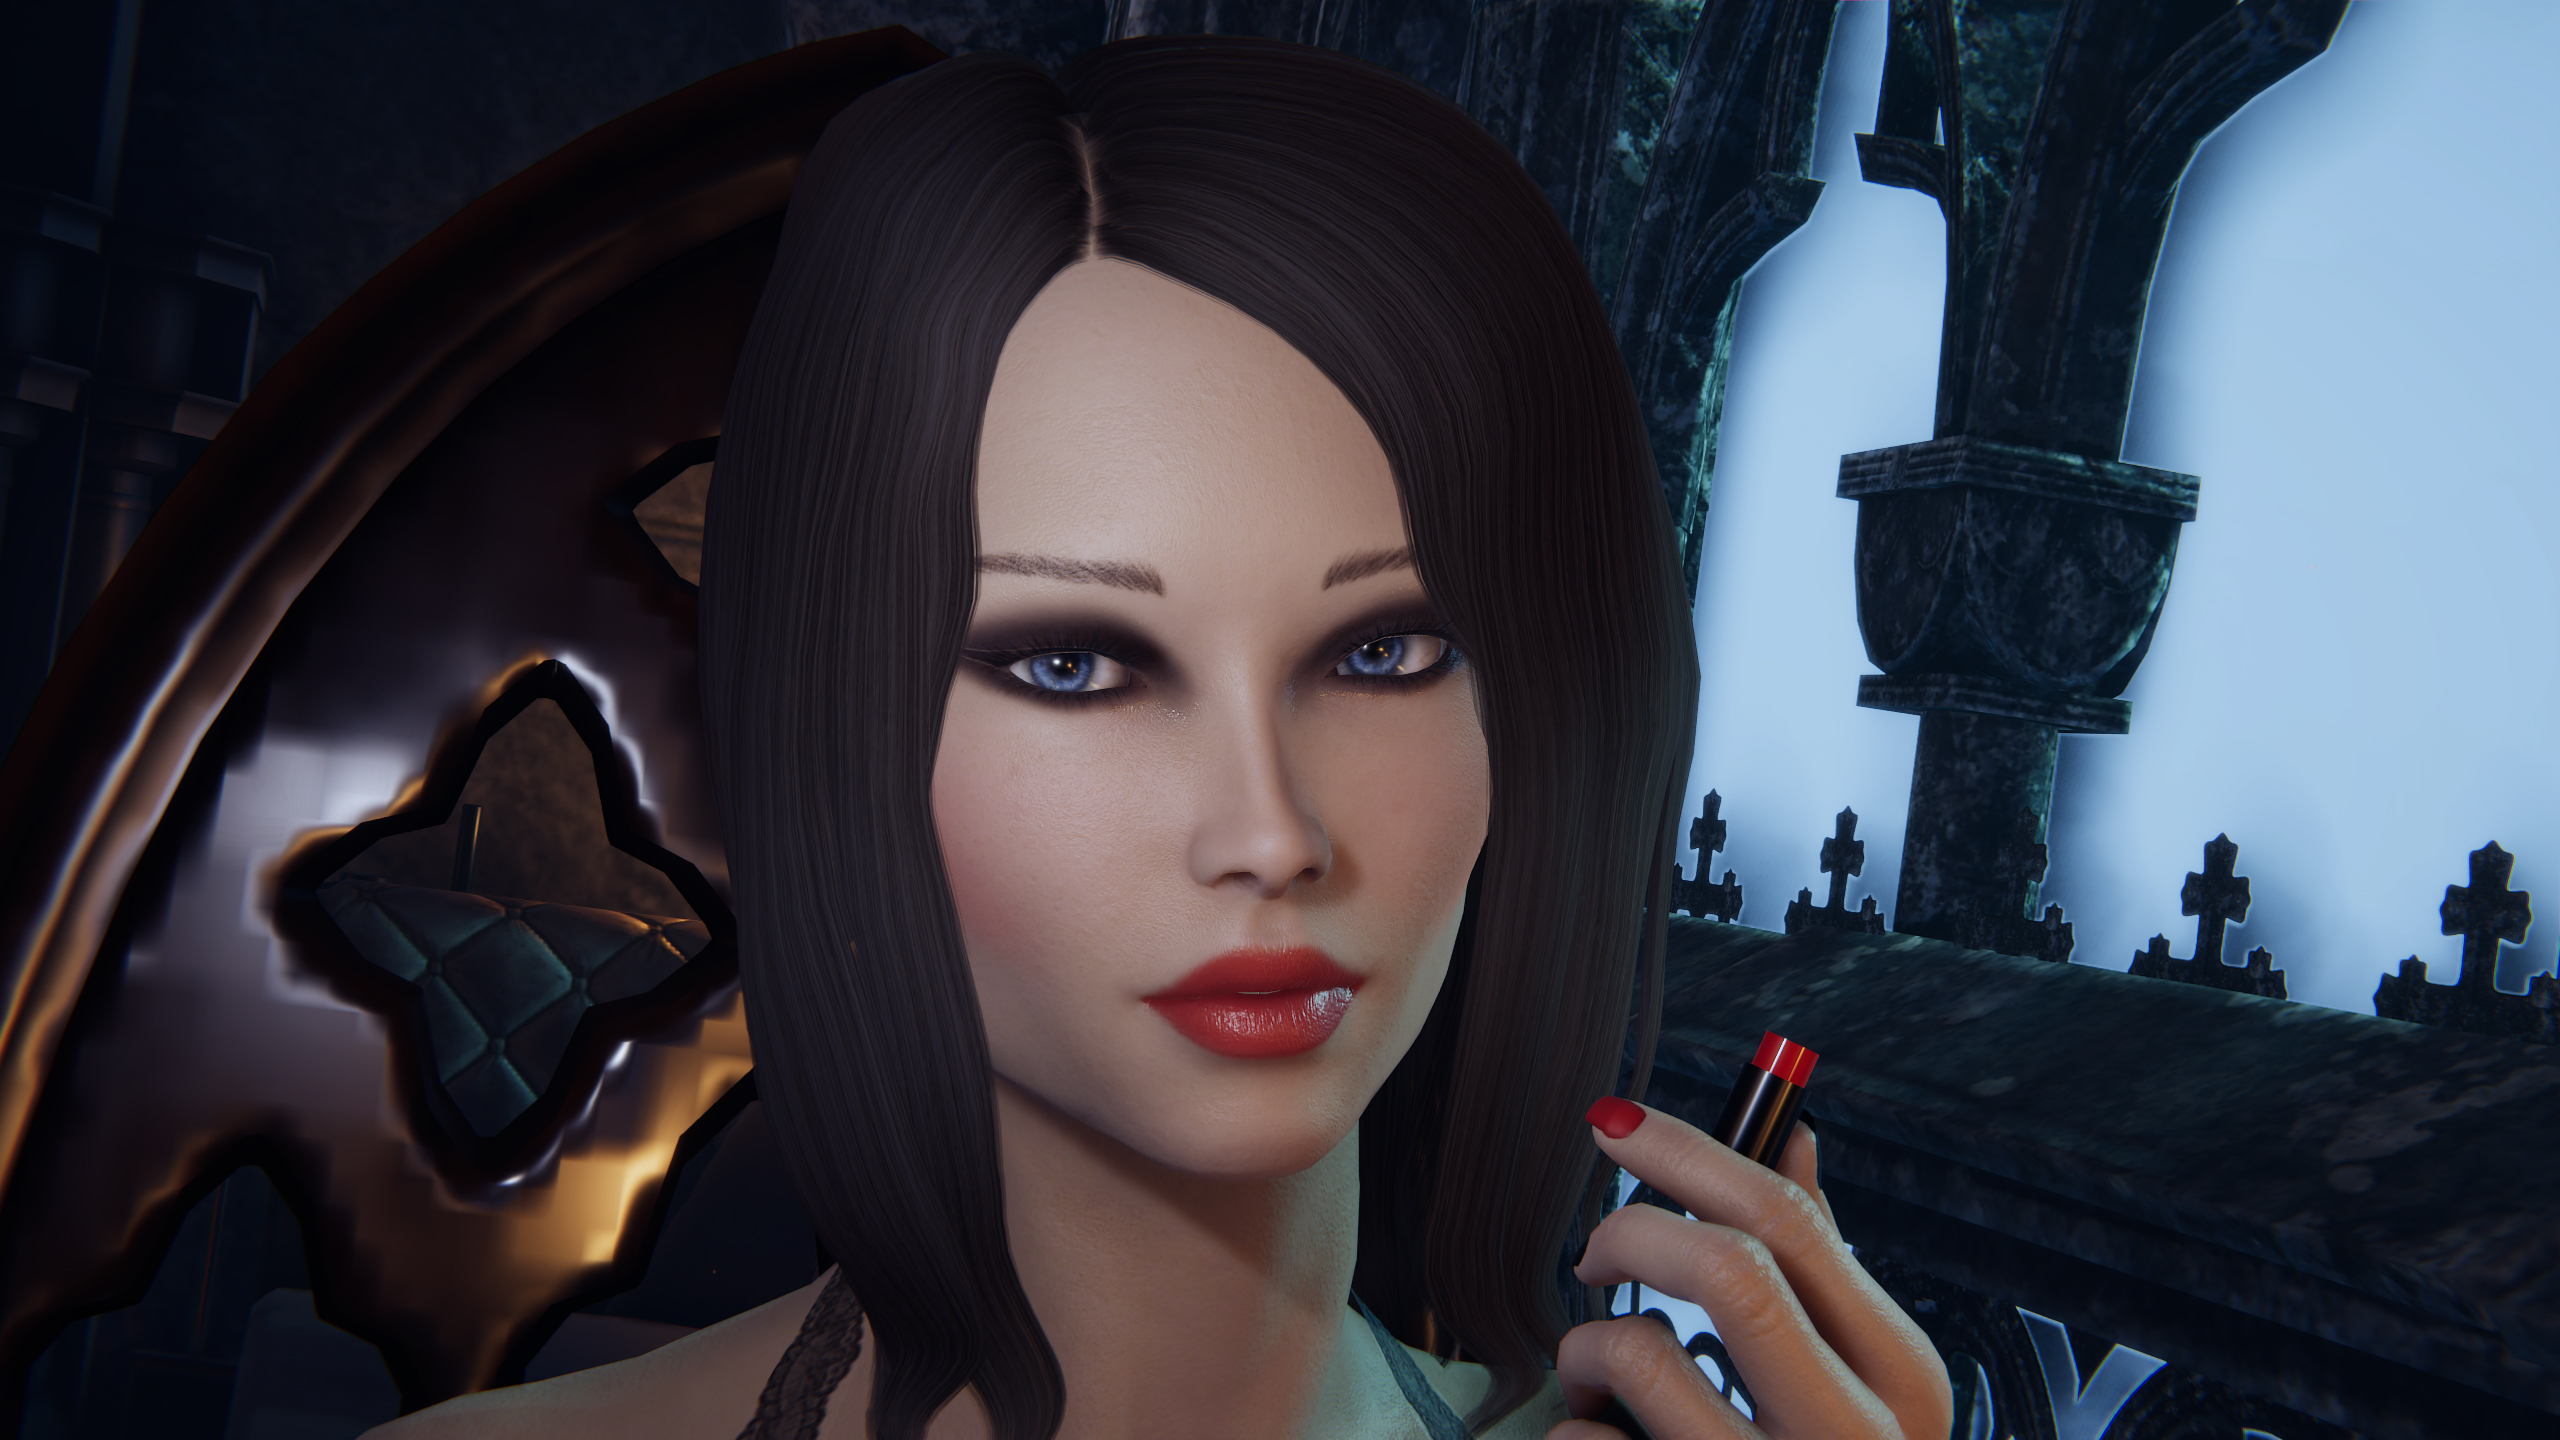 She Will Punish Them Having an Issue on Creating a Hero Face Guide